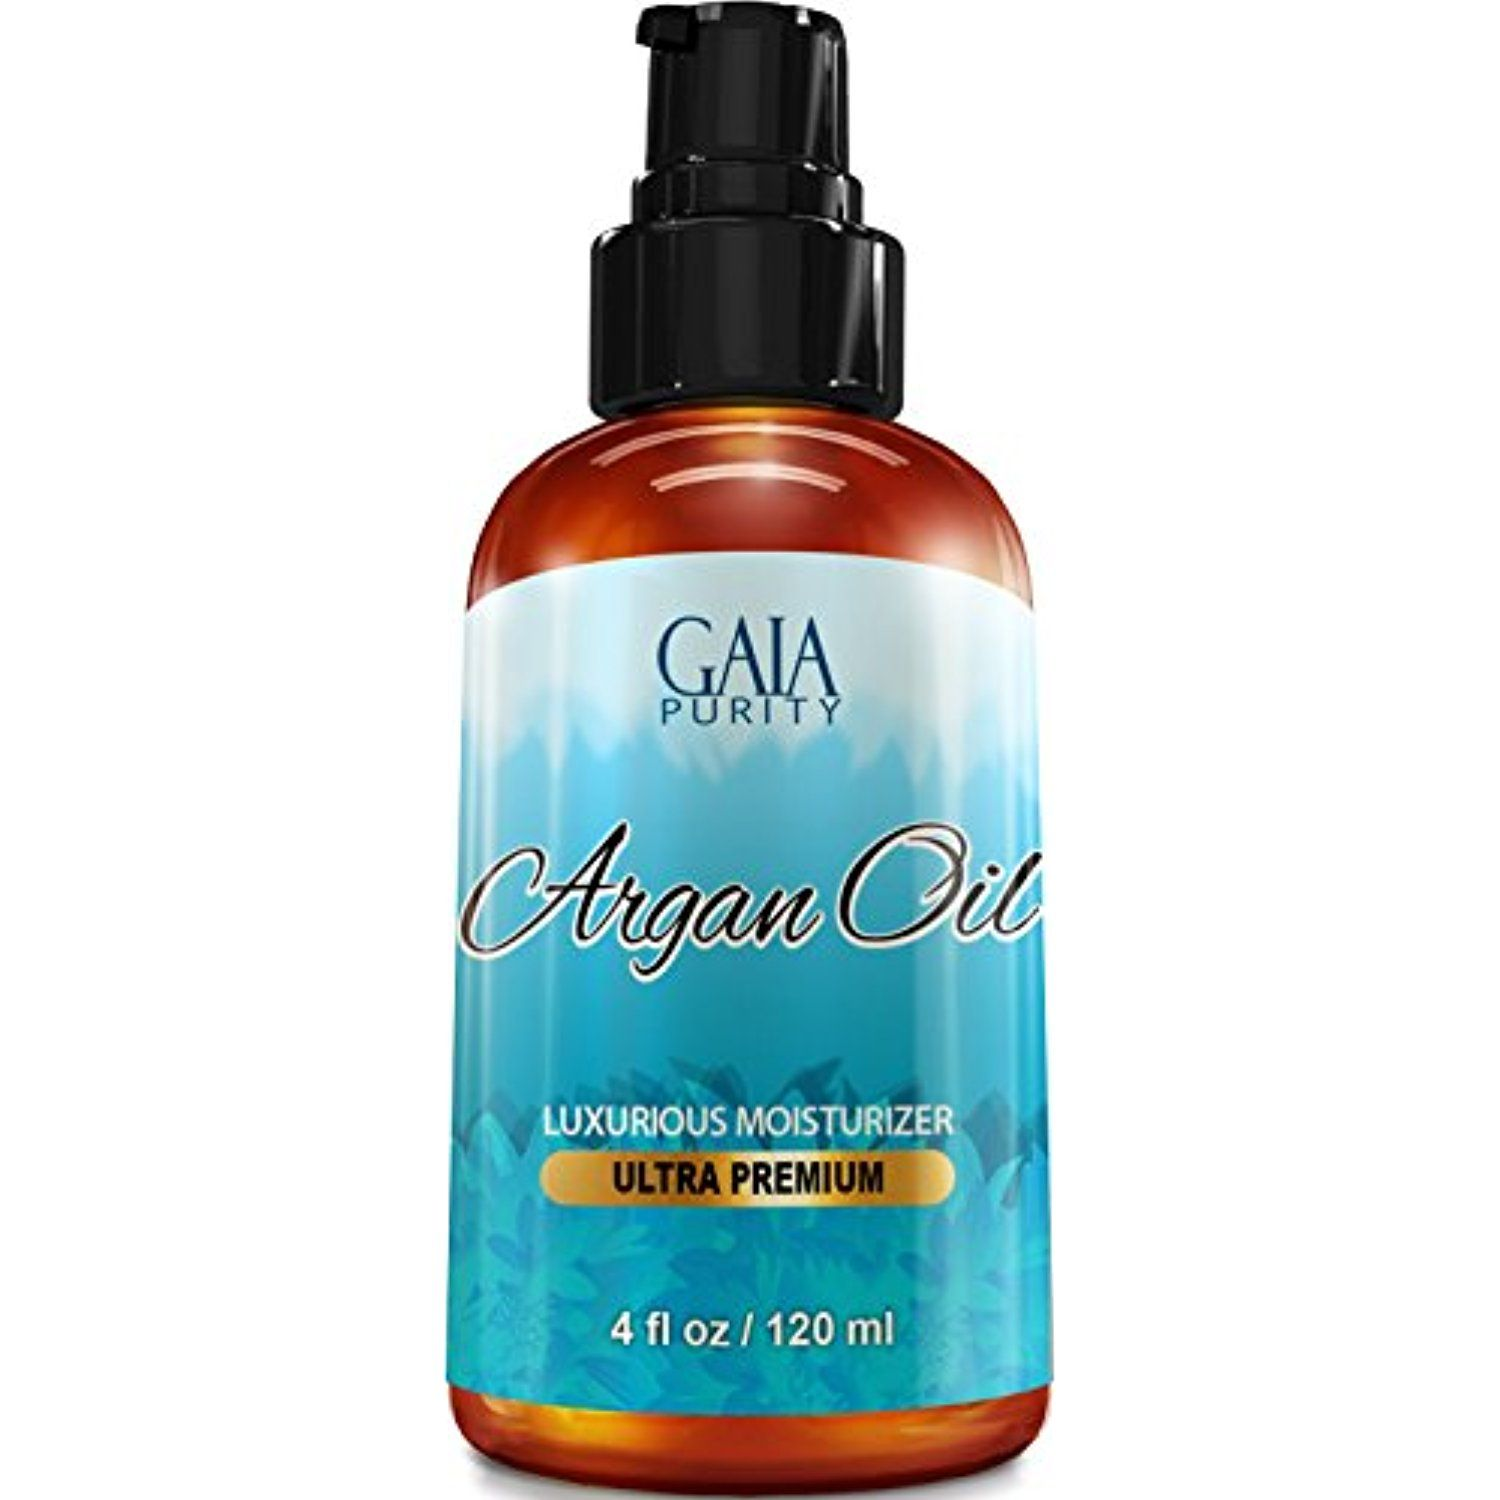 VIRGIN Argan Oil  Large oz  Moroccan Variety Best All Natural